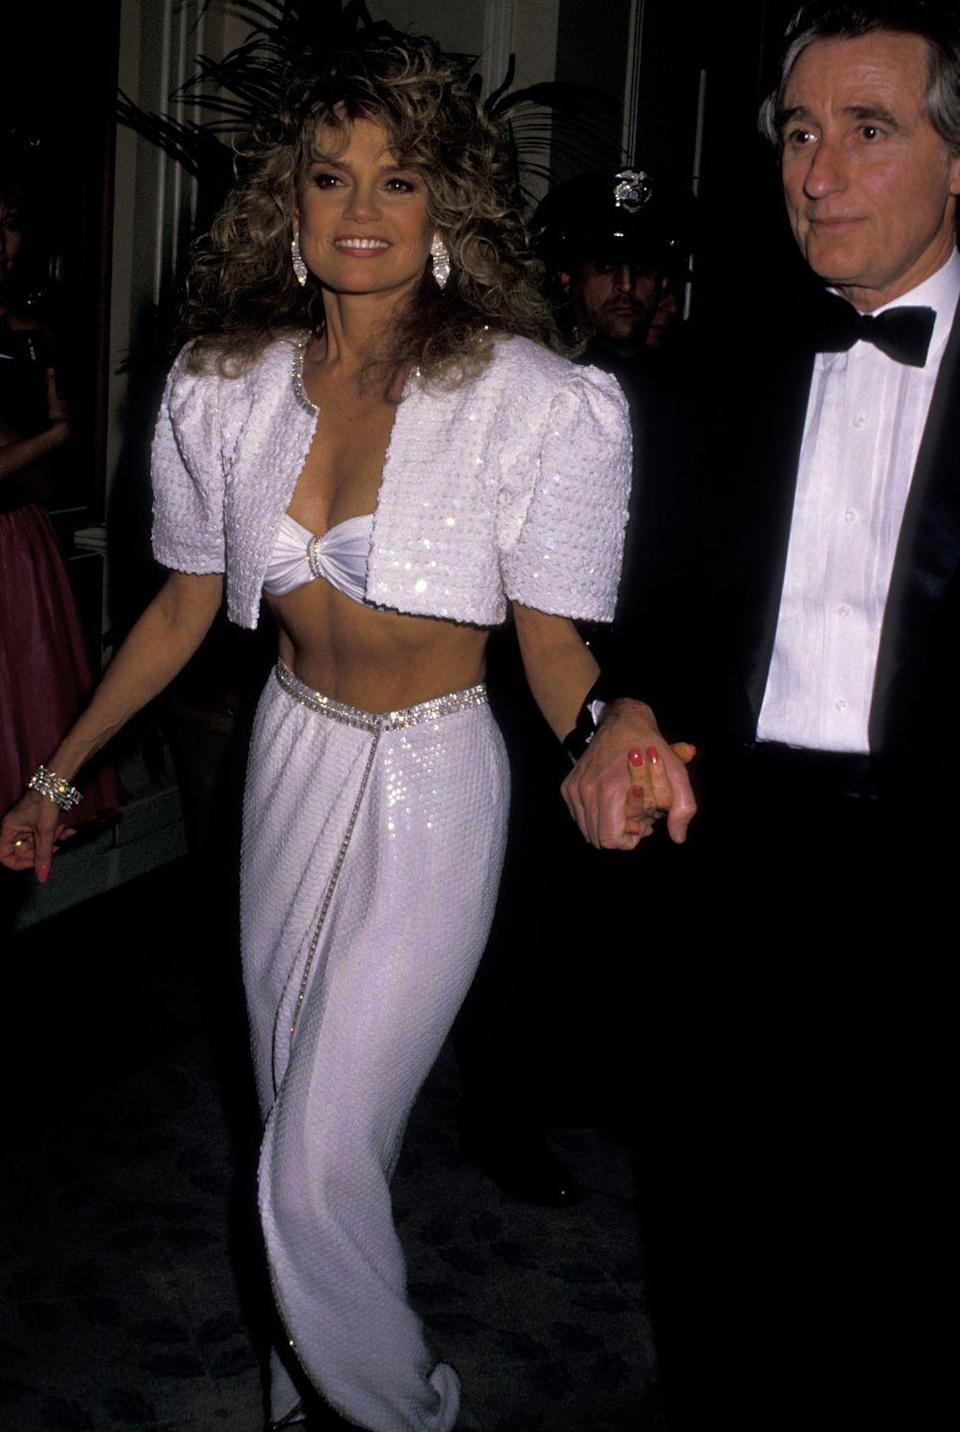 <p>The actress channeled a sexy, sequin genie in this outfit for her appearance at the 1988 Golden Globes. </p>